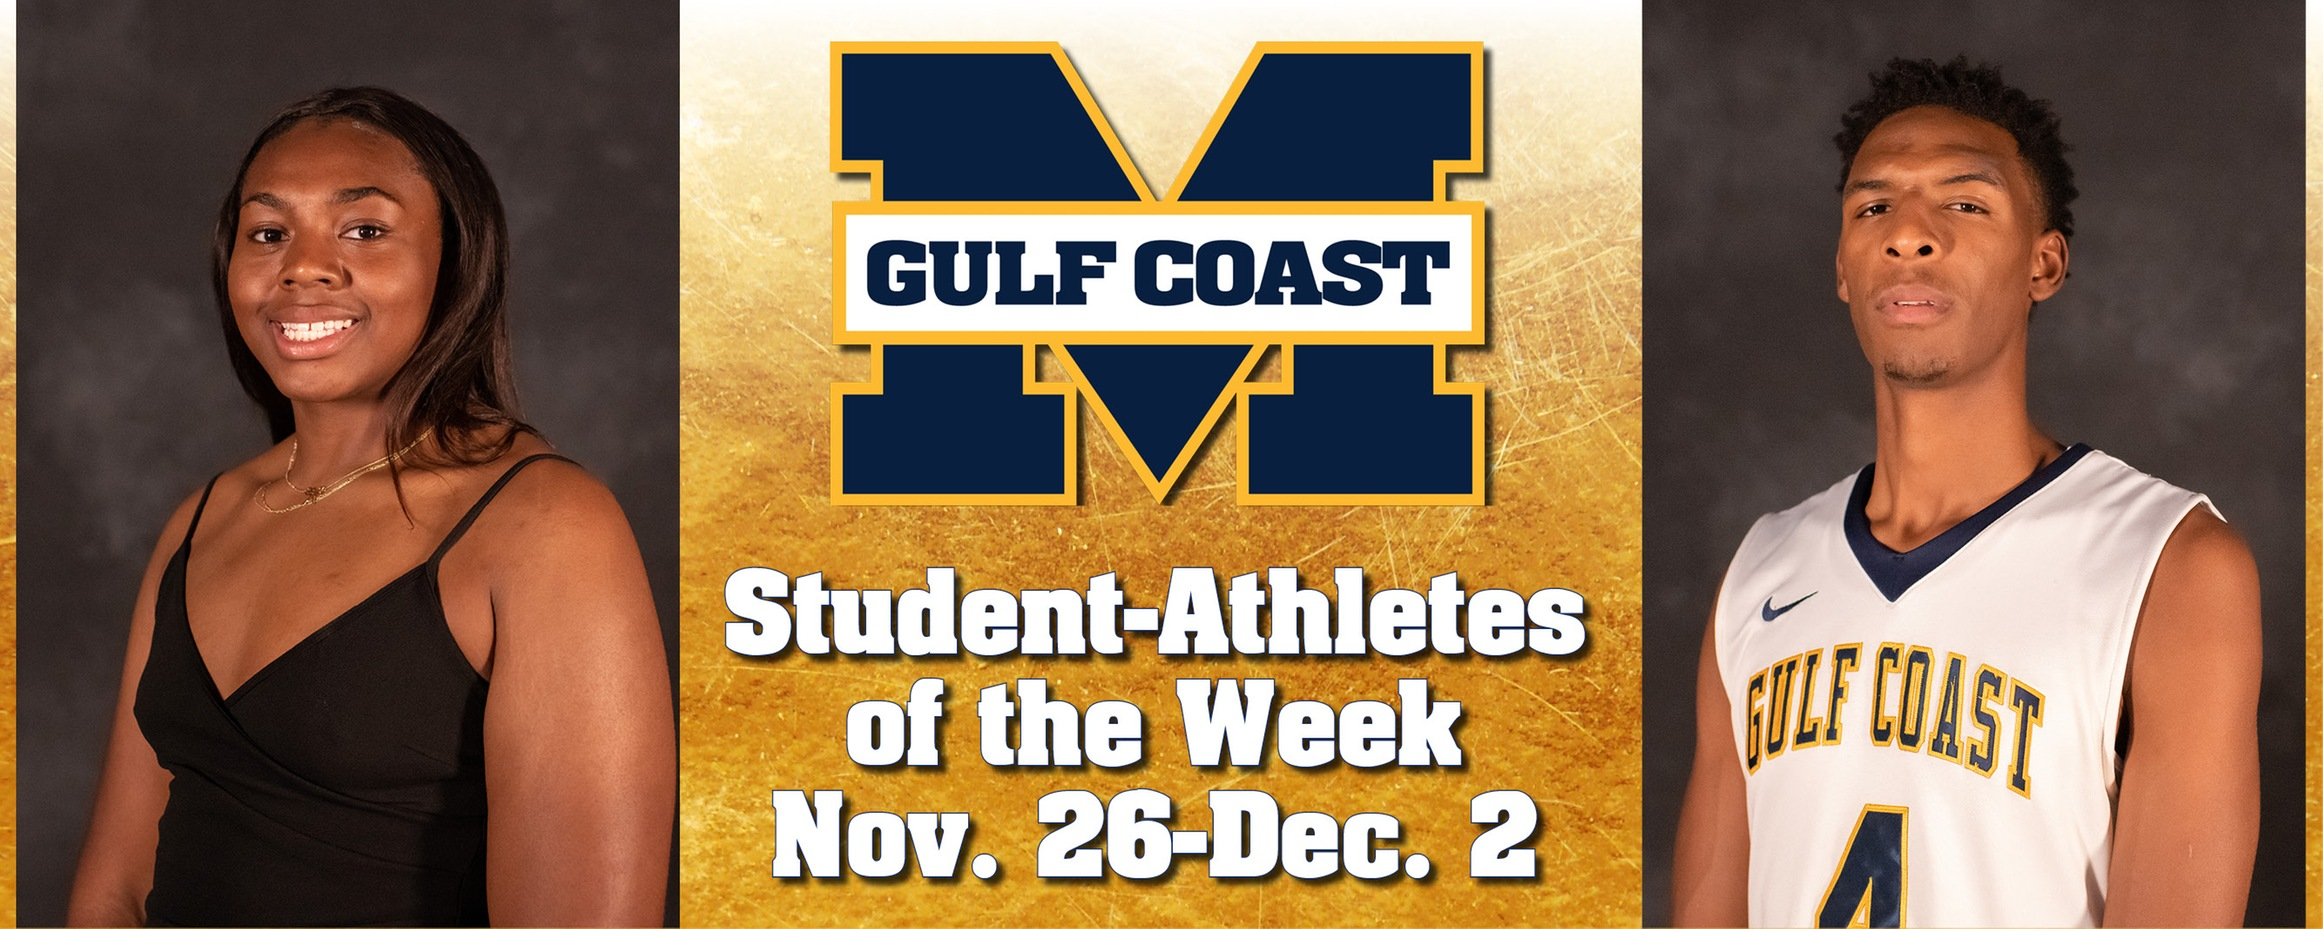 Simmons, Moorer named MGCCC Student-Athletes of the Week